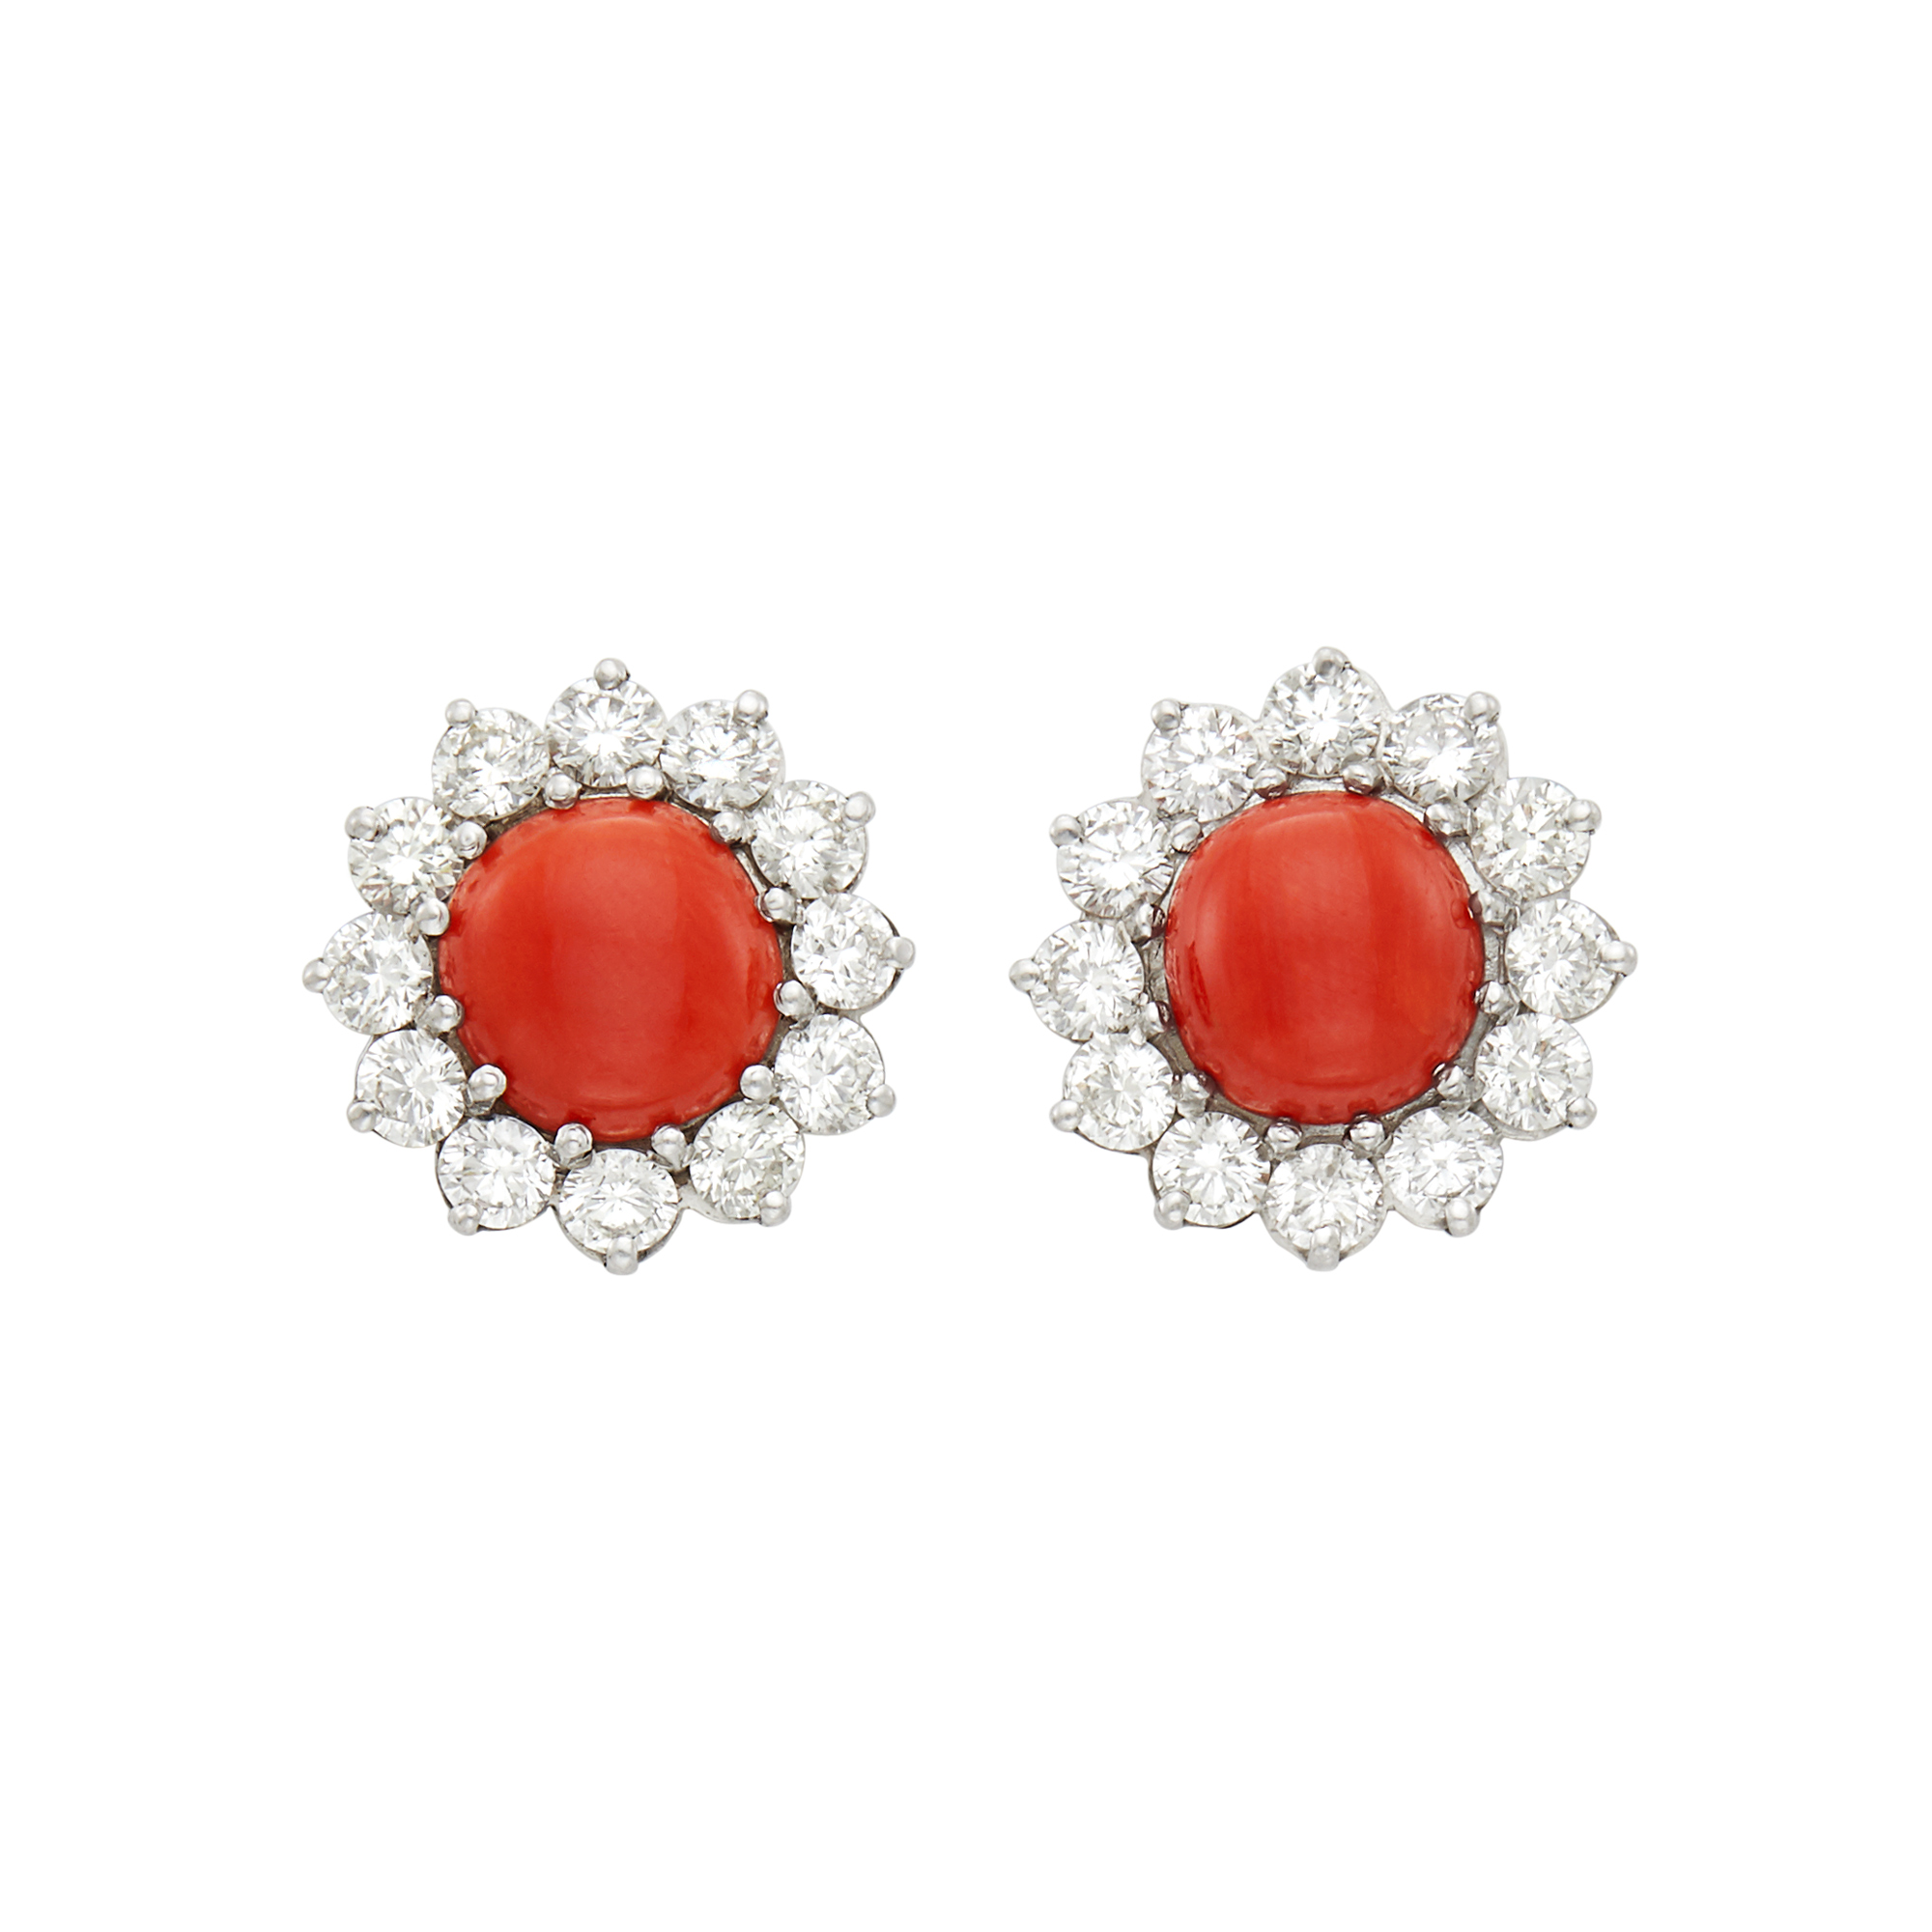 Lot image - Pair of Platinum, Coral and Diamond Earrings